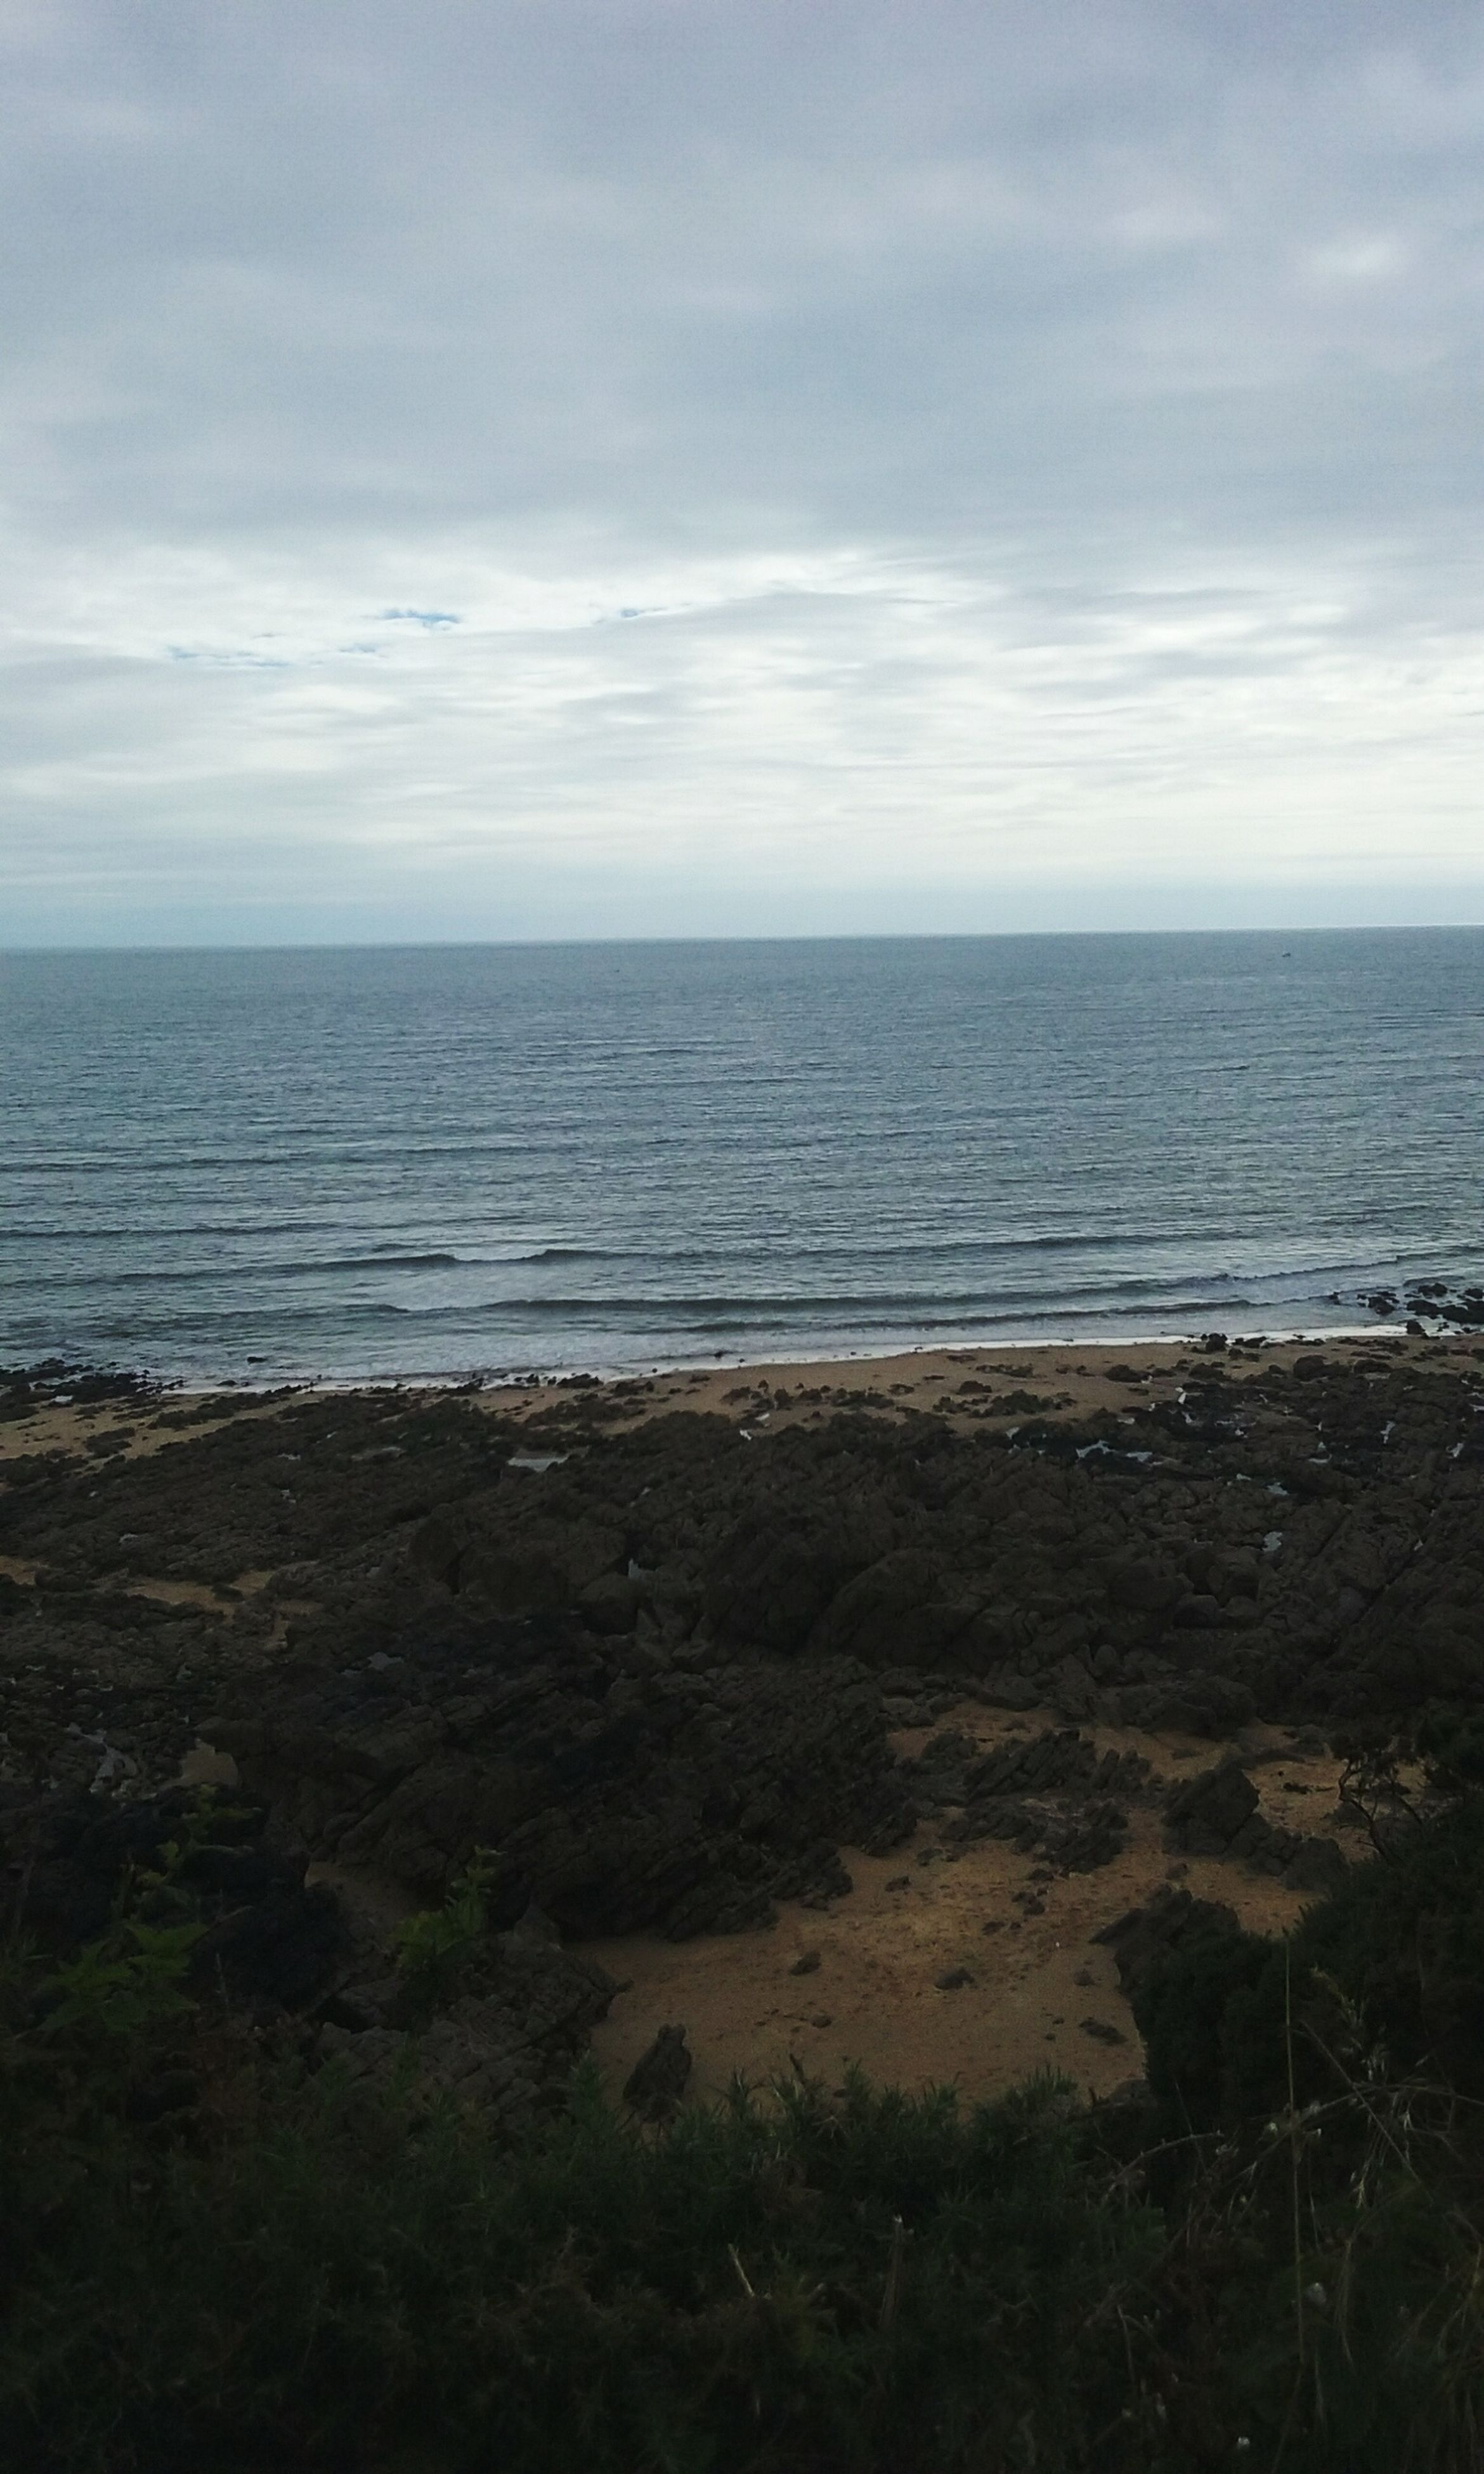 sea, horizon over water, water, sky, beach, tranquil scene, tranquility, scenics, beauty in nature, shore, cloud - sky, nature, idyllic, cloud, coastline, cloudy, remote, calm, day, outdoors, seascape, non-urban scene, no people, ocean, non urban scene, blue